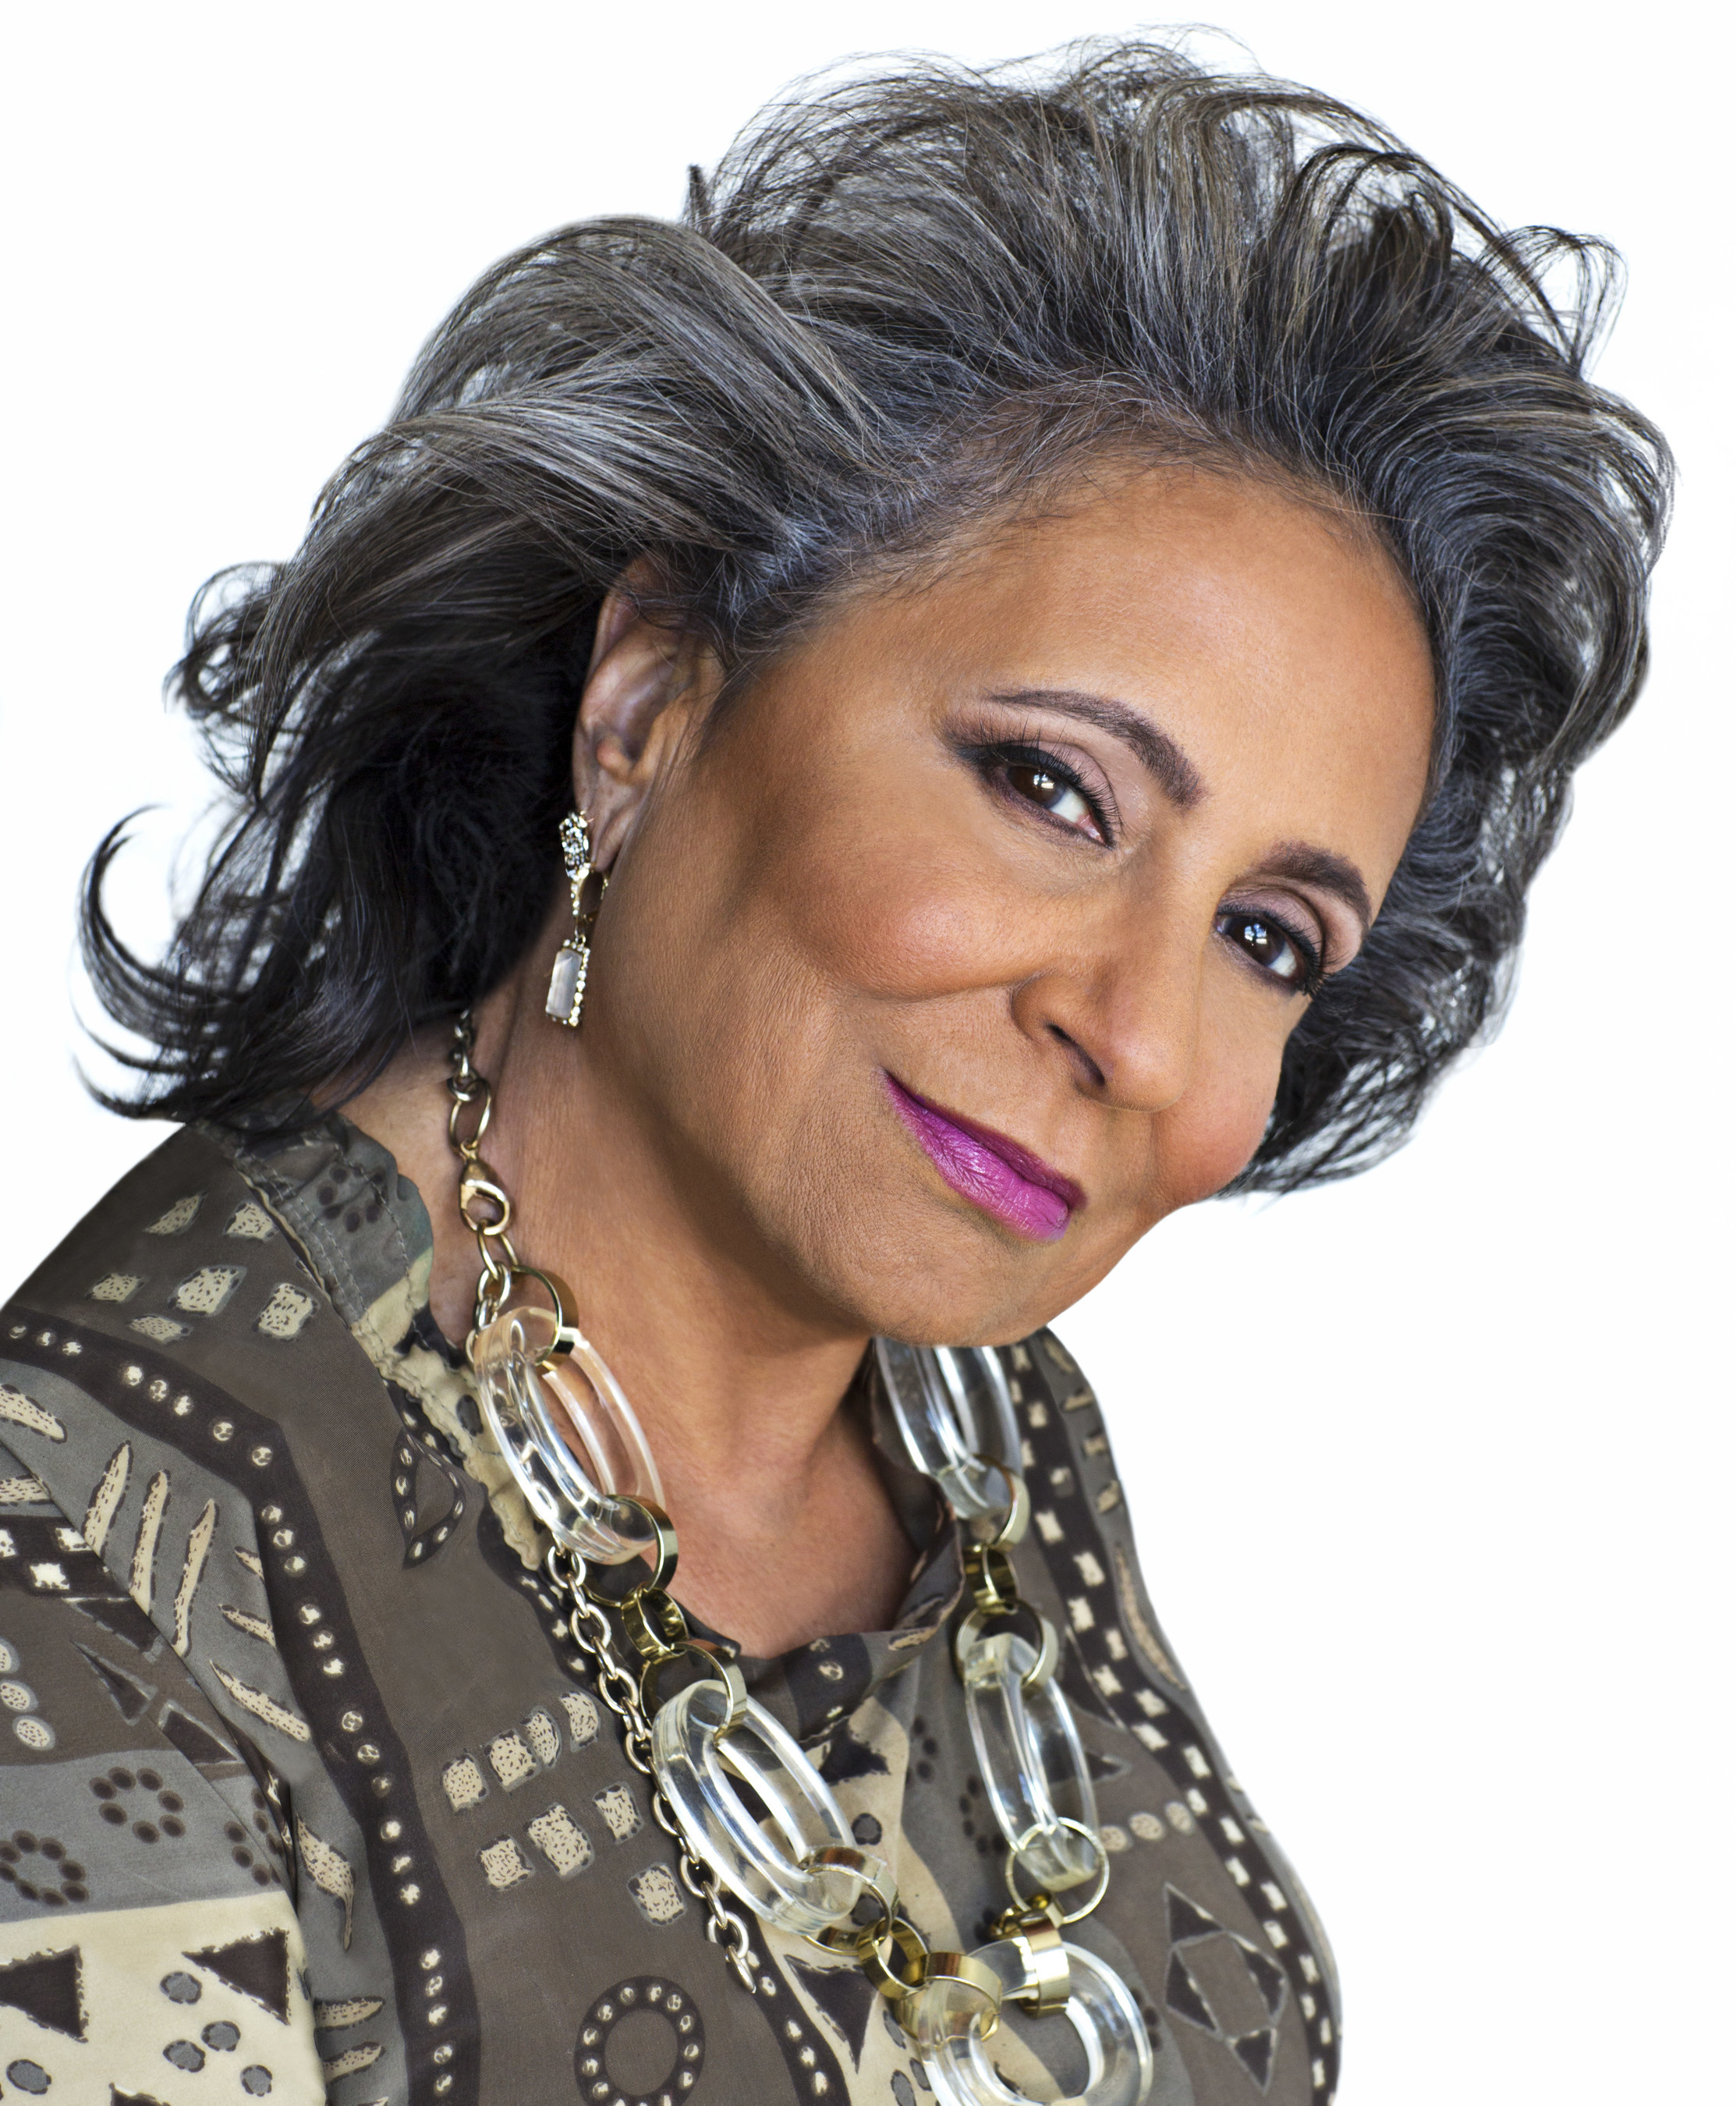 Urban One, Inc. Founder and Chairperson Cathy Hughes To Keynote Babson's  21st Annual Black Affinity Network Conference